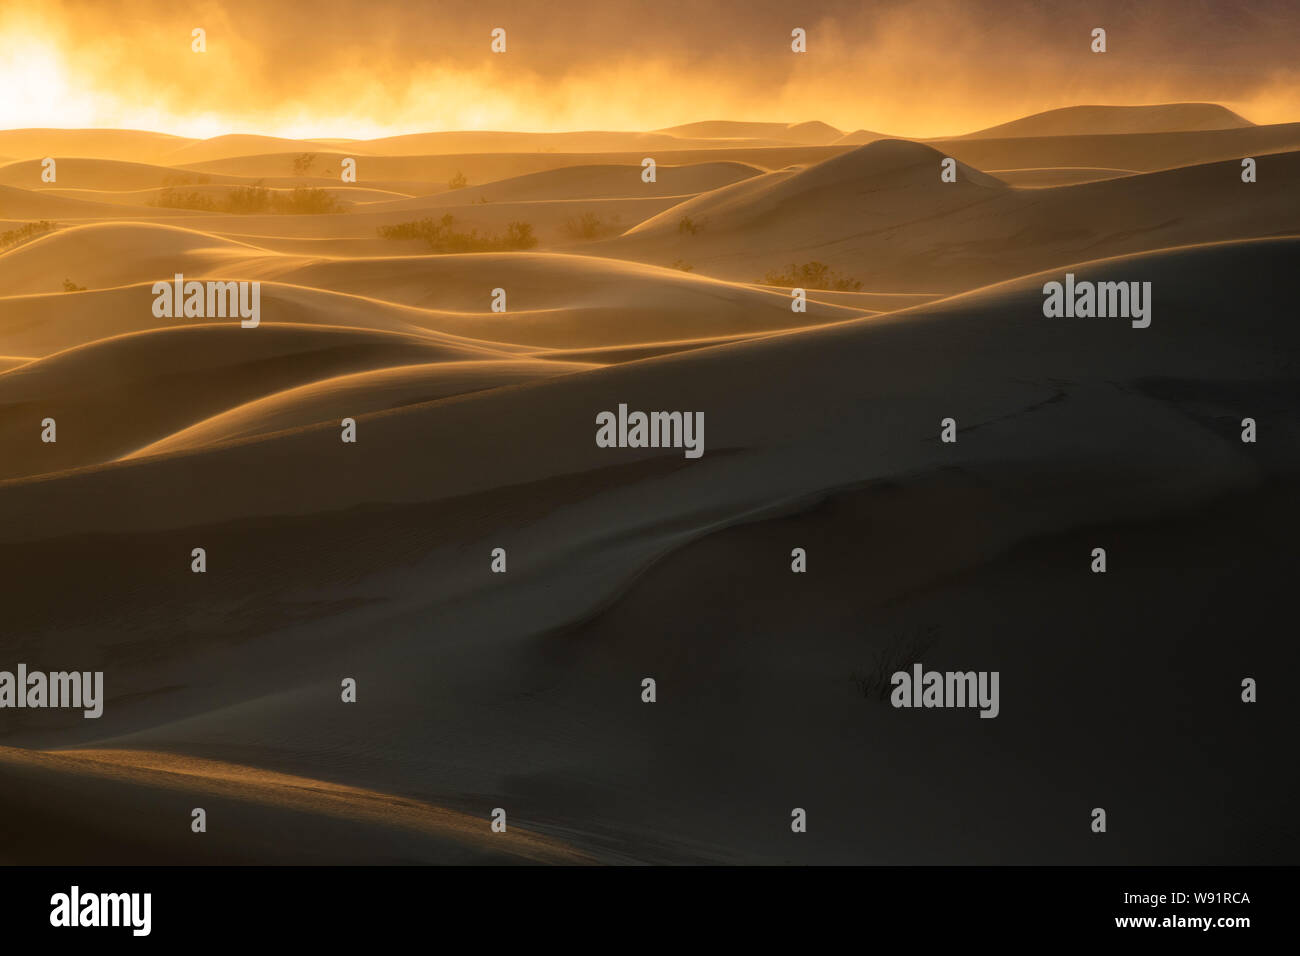 Sandstorm at sunset, Mesquite Dunes, Death Valley National Park, California Stock Photo